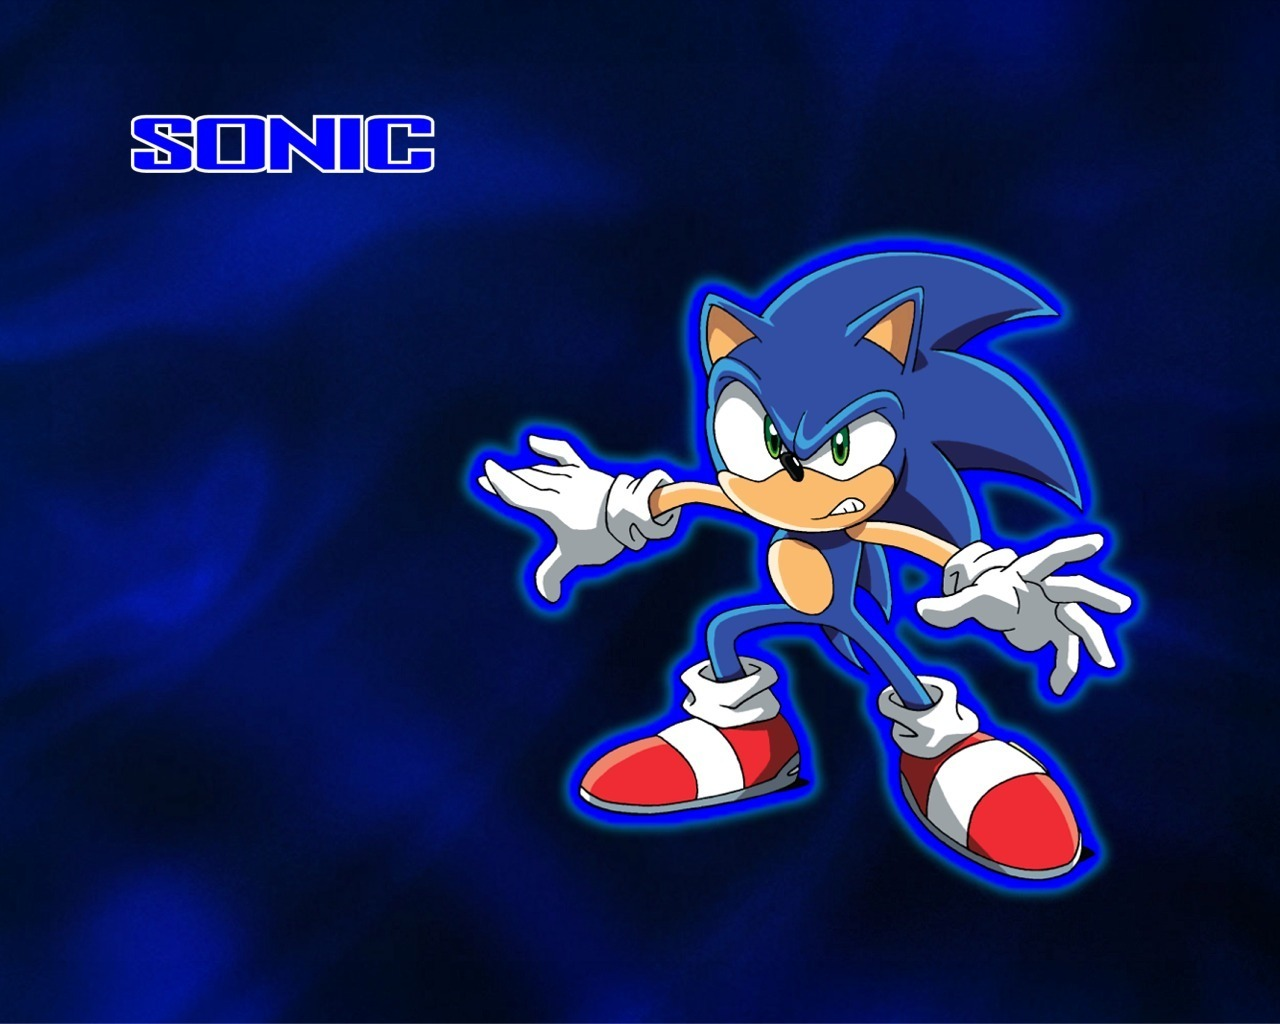 Free Download Sonic Wallpapers Sonic The Hedgehog Fan Art 1481662 1280x1024 For Your Desktop Mobile Tablet Explore 127 Sonic The Hedgehog Background Superman And Batman Wallpapers Carolina Gamecock Wallpaper Jerry Rice Wallpaper